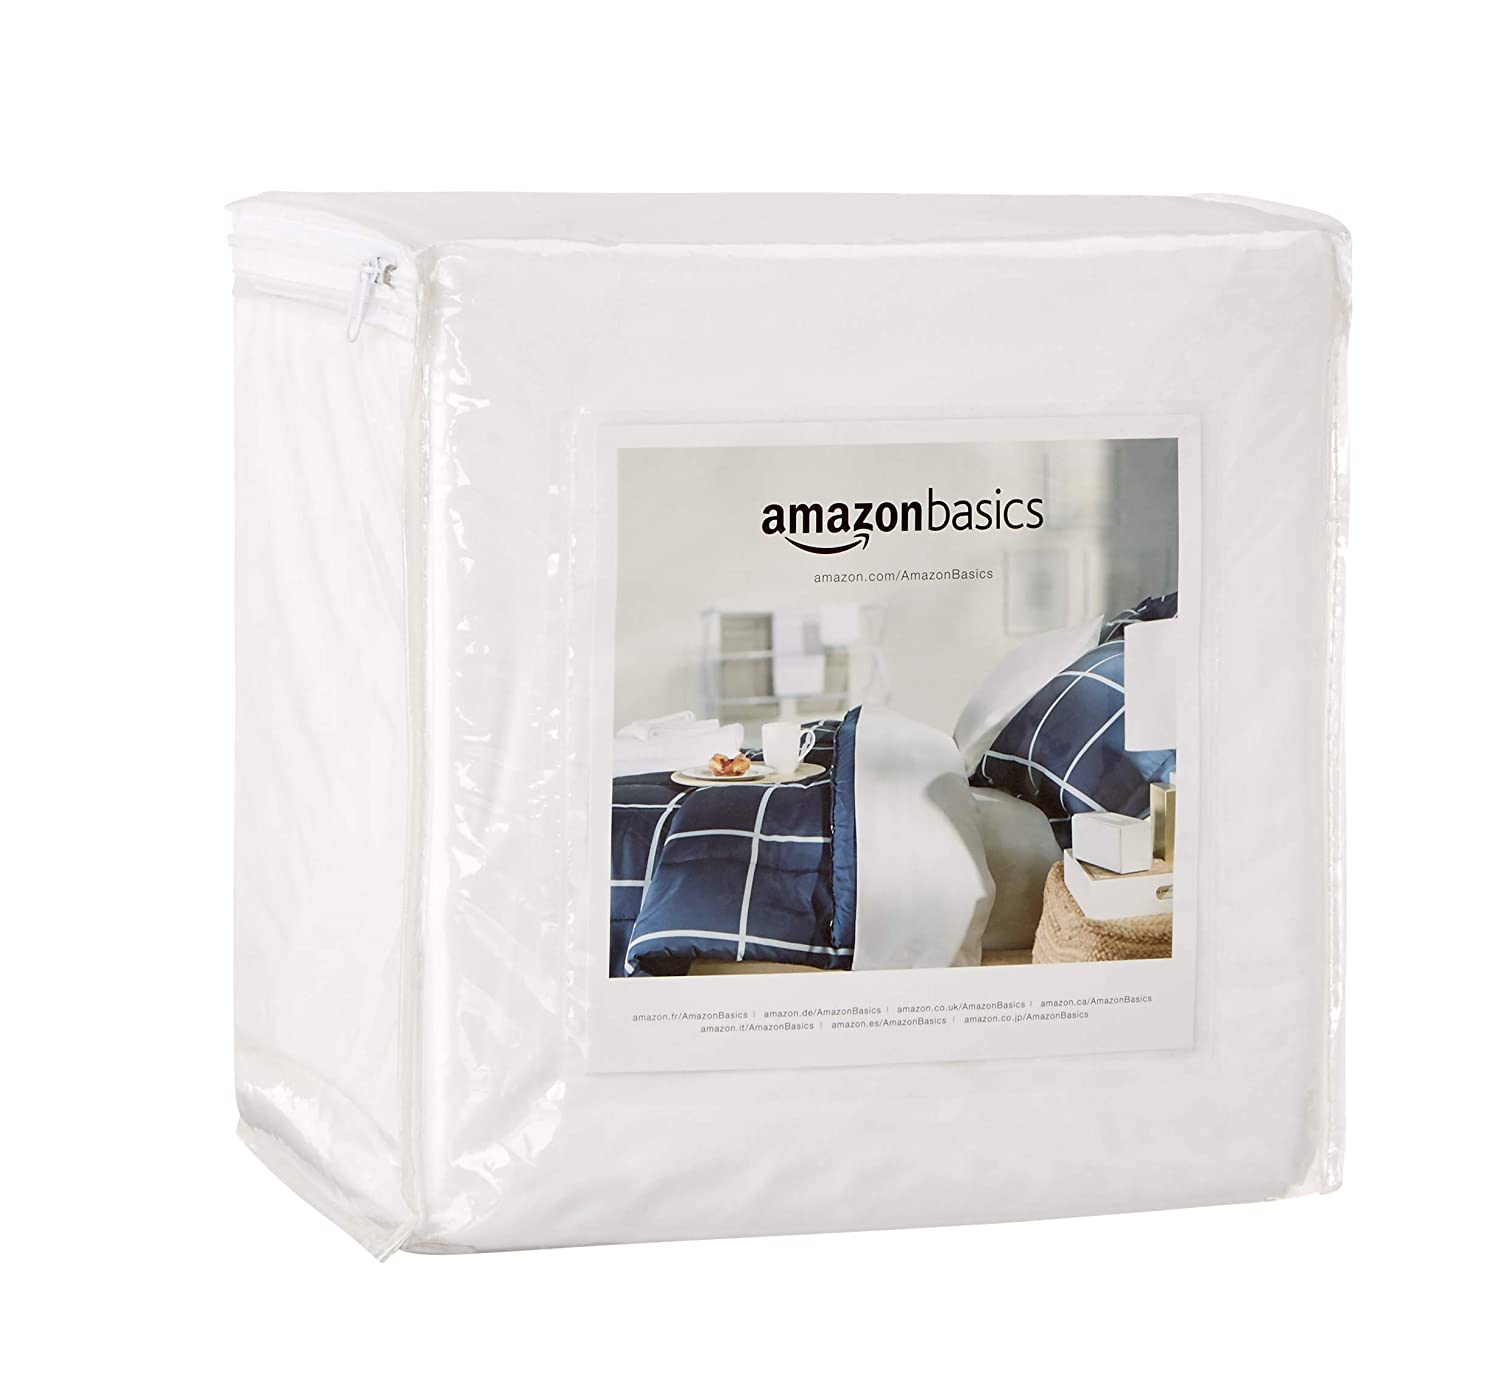 AmazonBasics Fully-Encased Waterproof Mattress Protector - Queen, Standard 12 to 18-Inch Depth